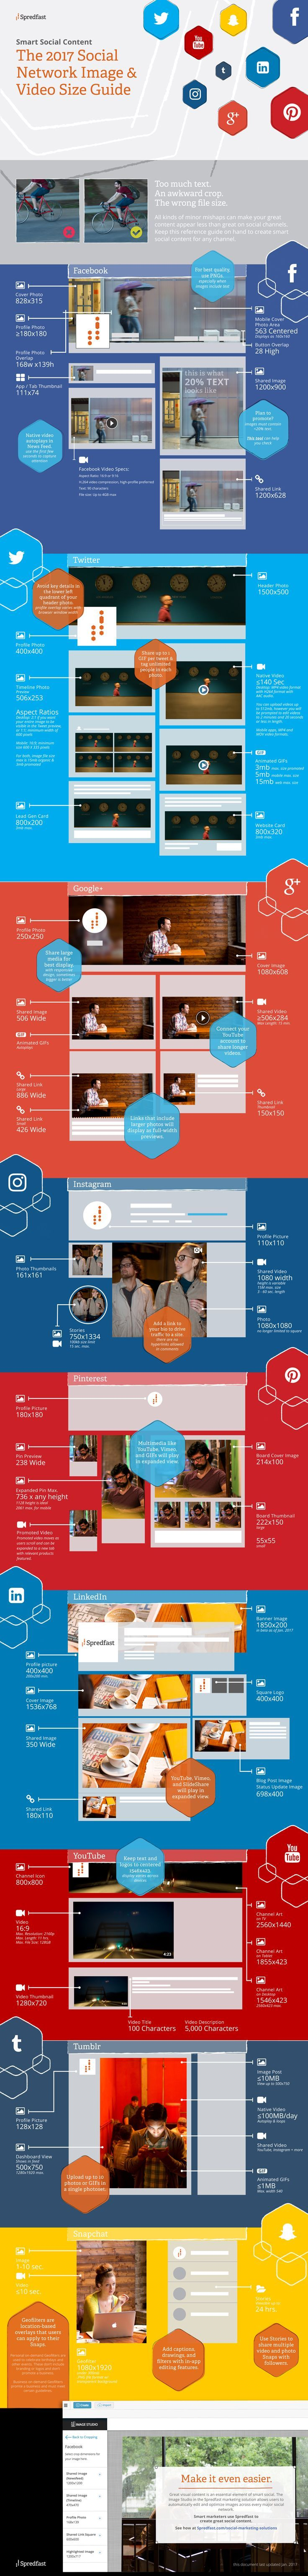 The 2017 social network image and video size guide #videomarketing2017